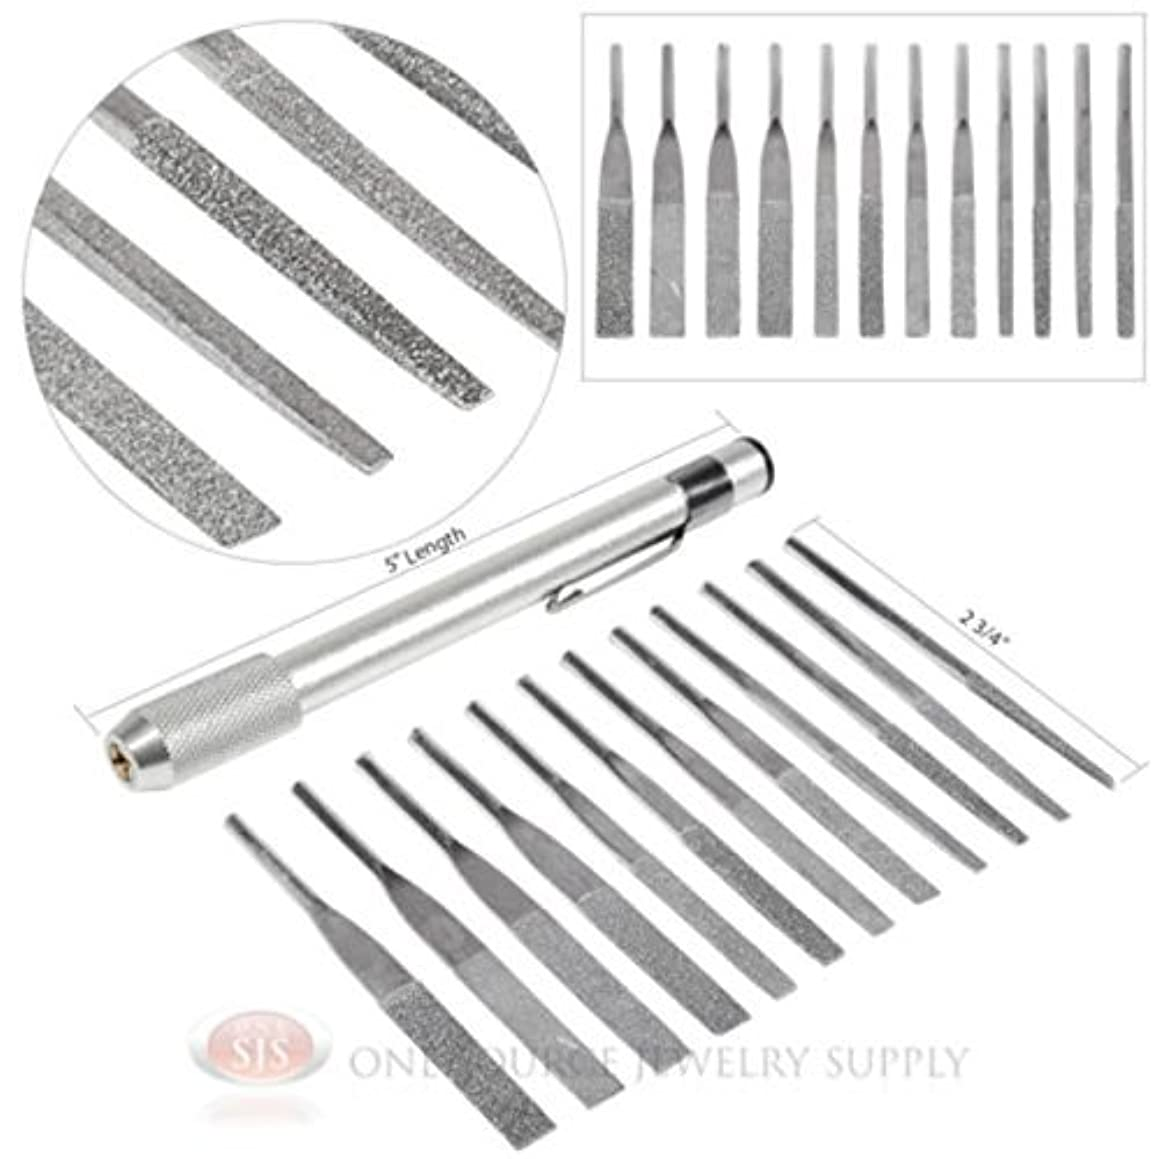 12pc Assorted Grit and Size Diamond Needle File Set Jewelers Tools Handle